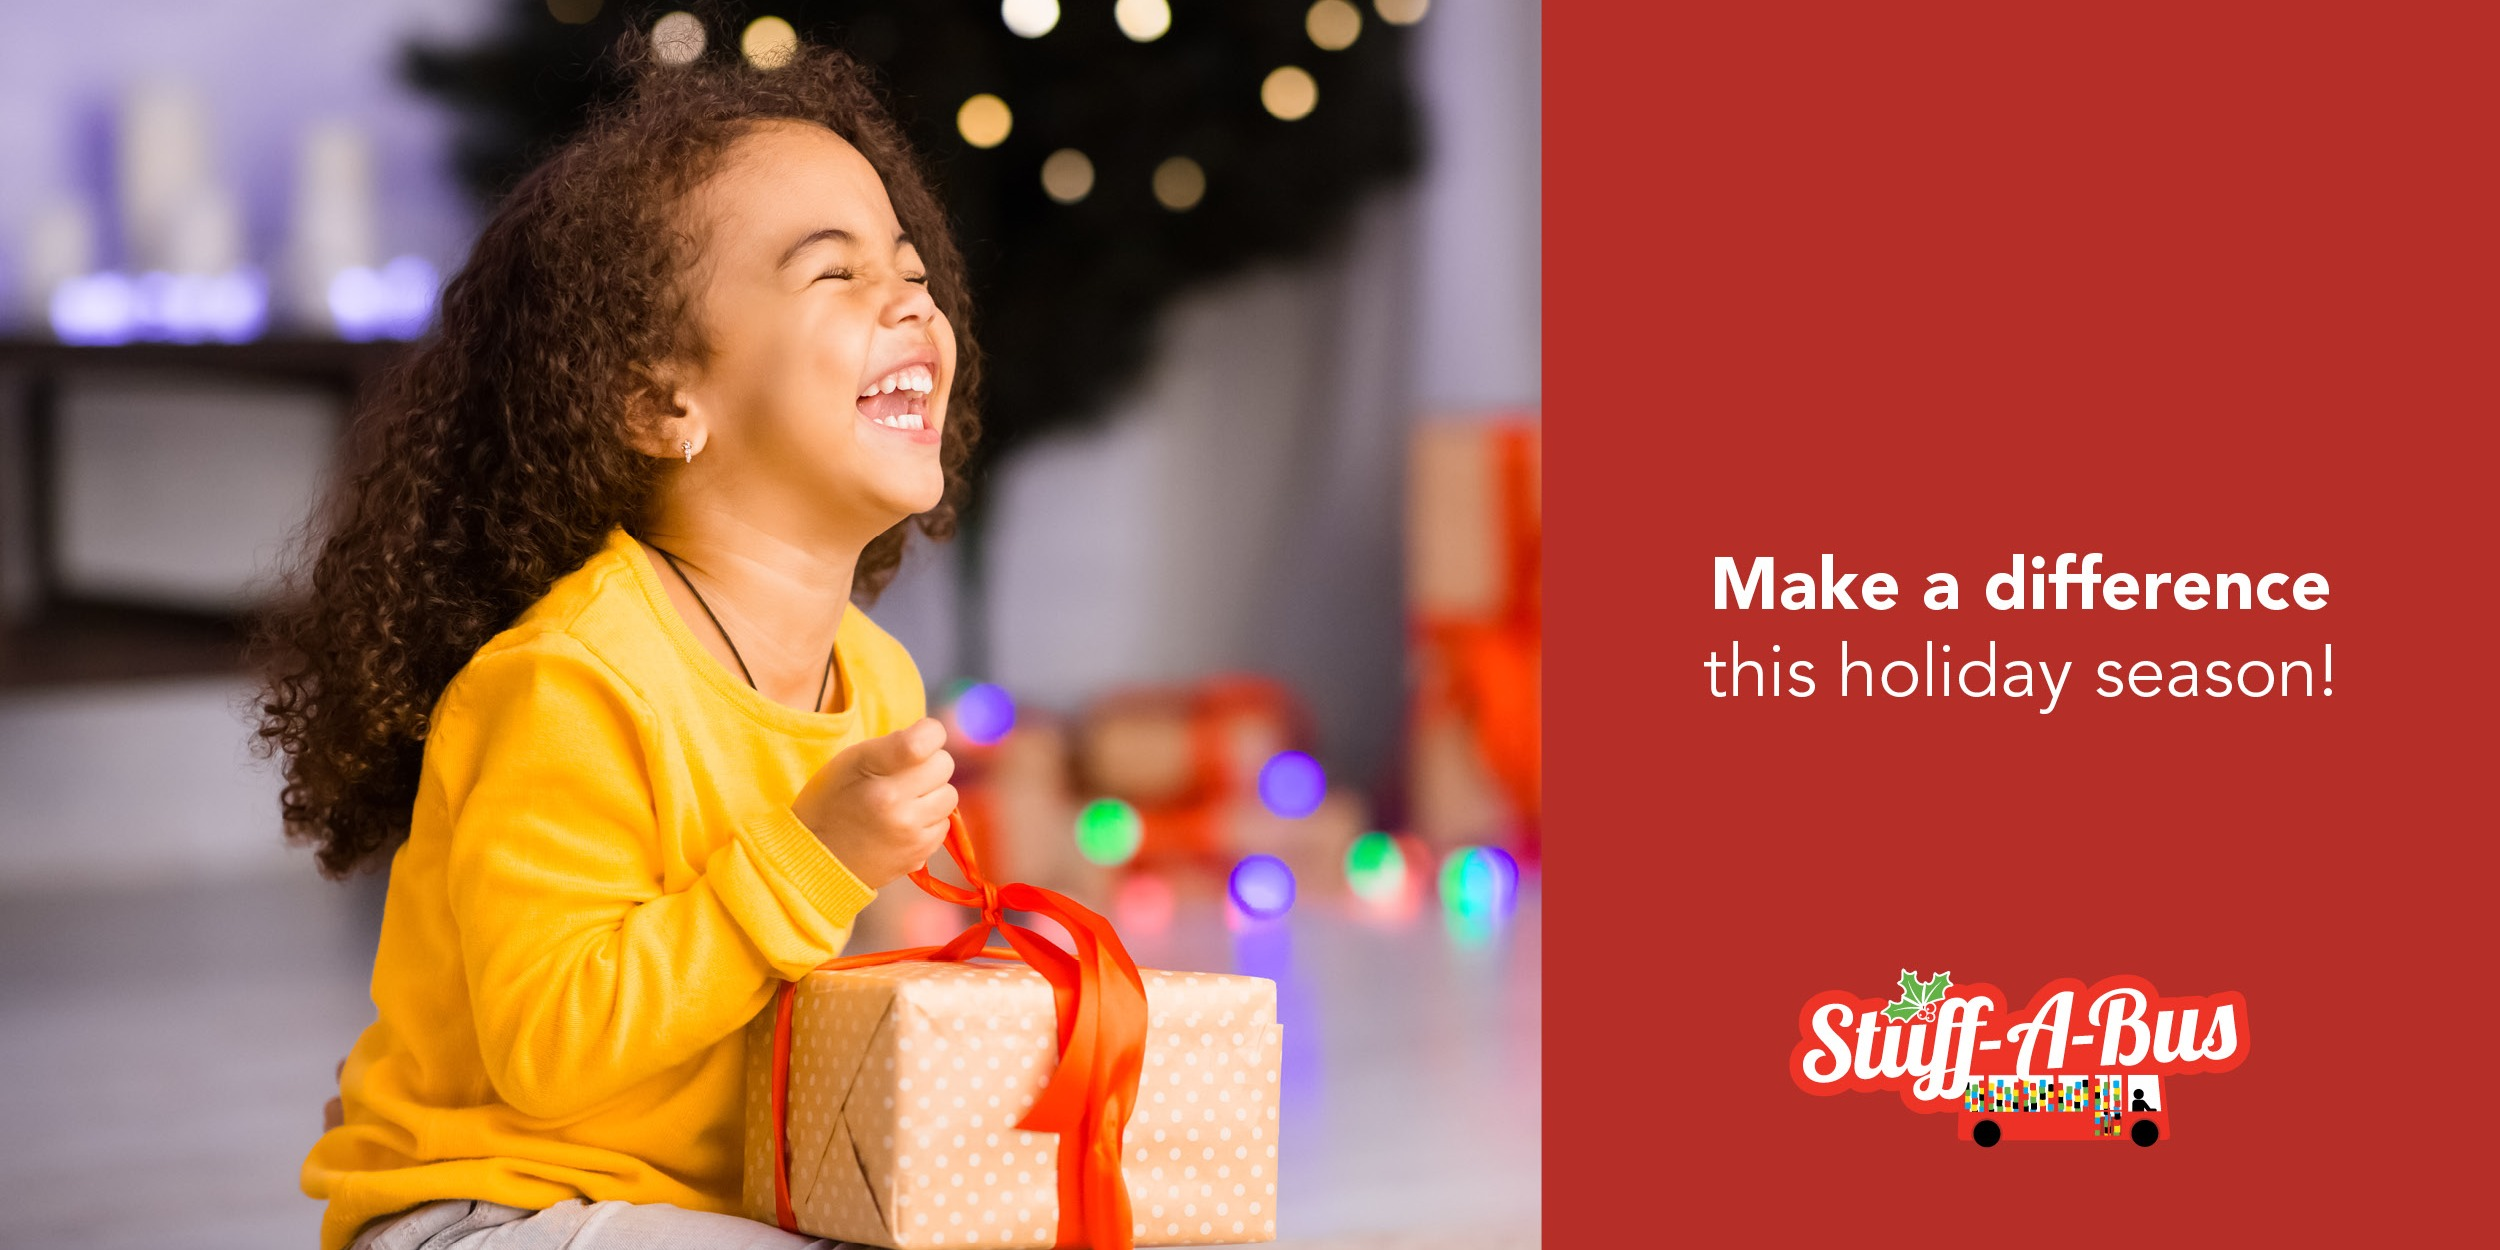 Make a difference this holiday season!